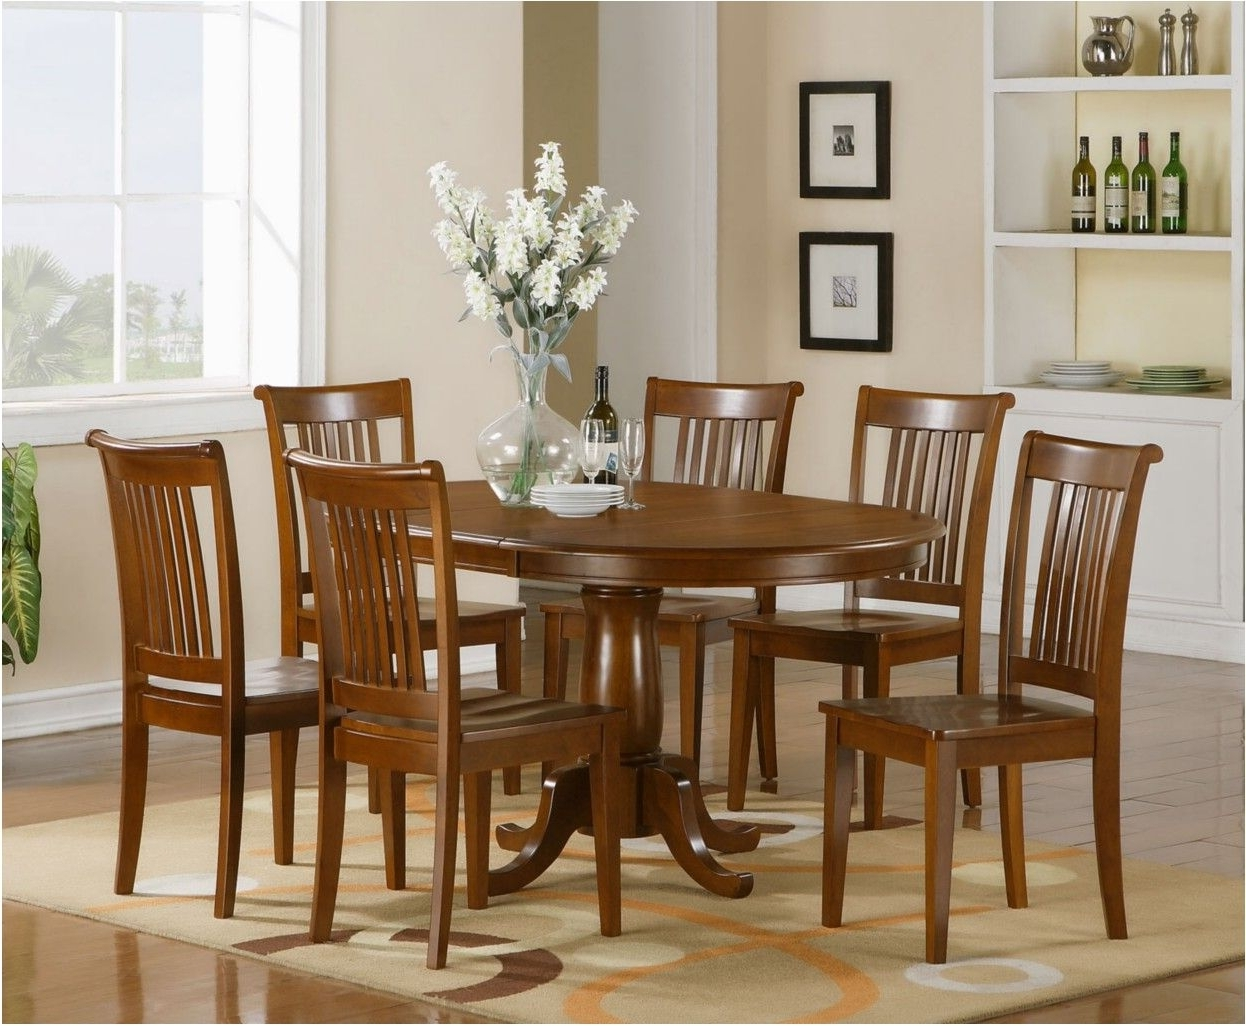 Folding Dining Table And Chairs Sets Intended For Latest Fantastic Dining Room Chair Sets 6 Dining Room Decor Ideas And (View 17 of 25)